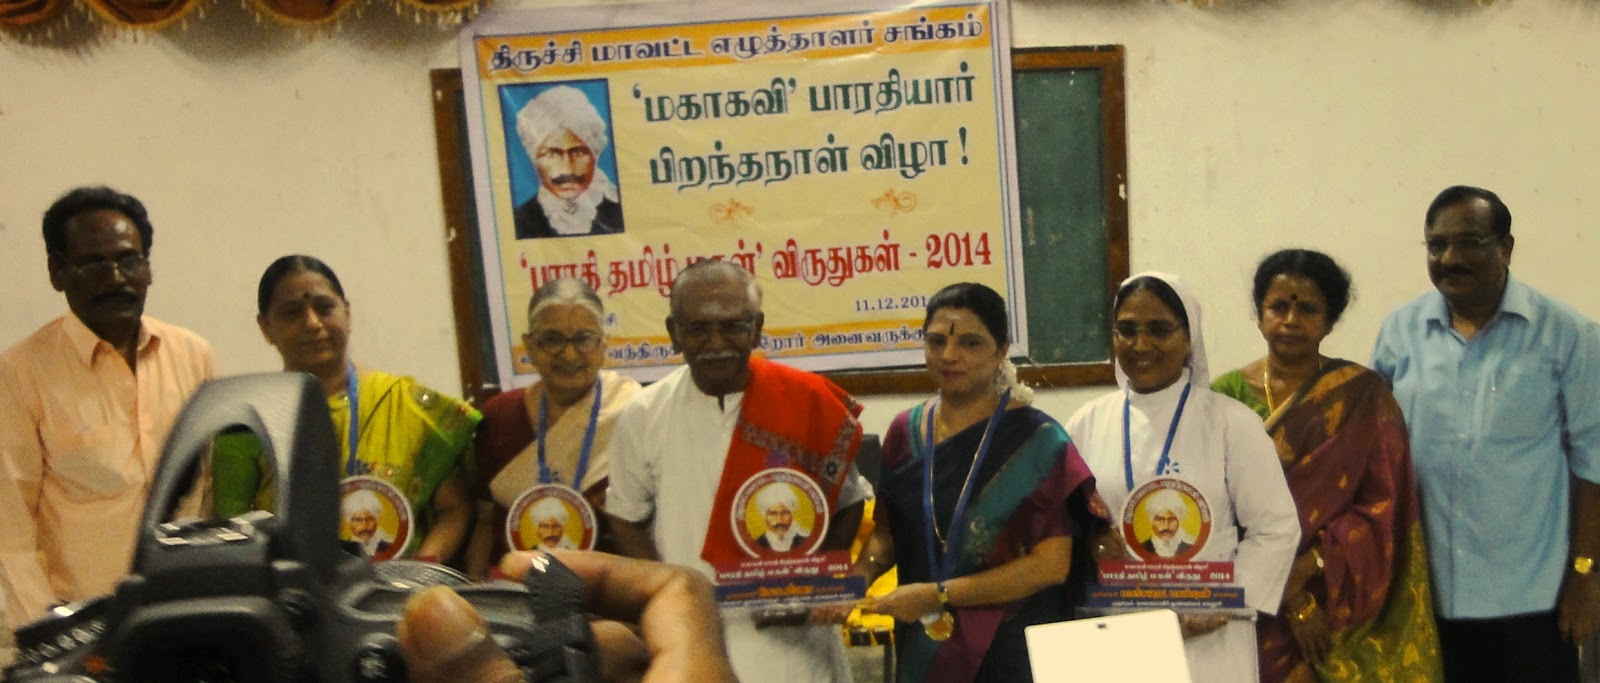 Batathi's birthday celebrated by writers association in Trichy